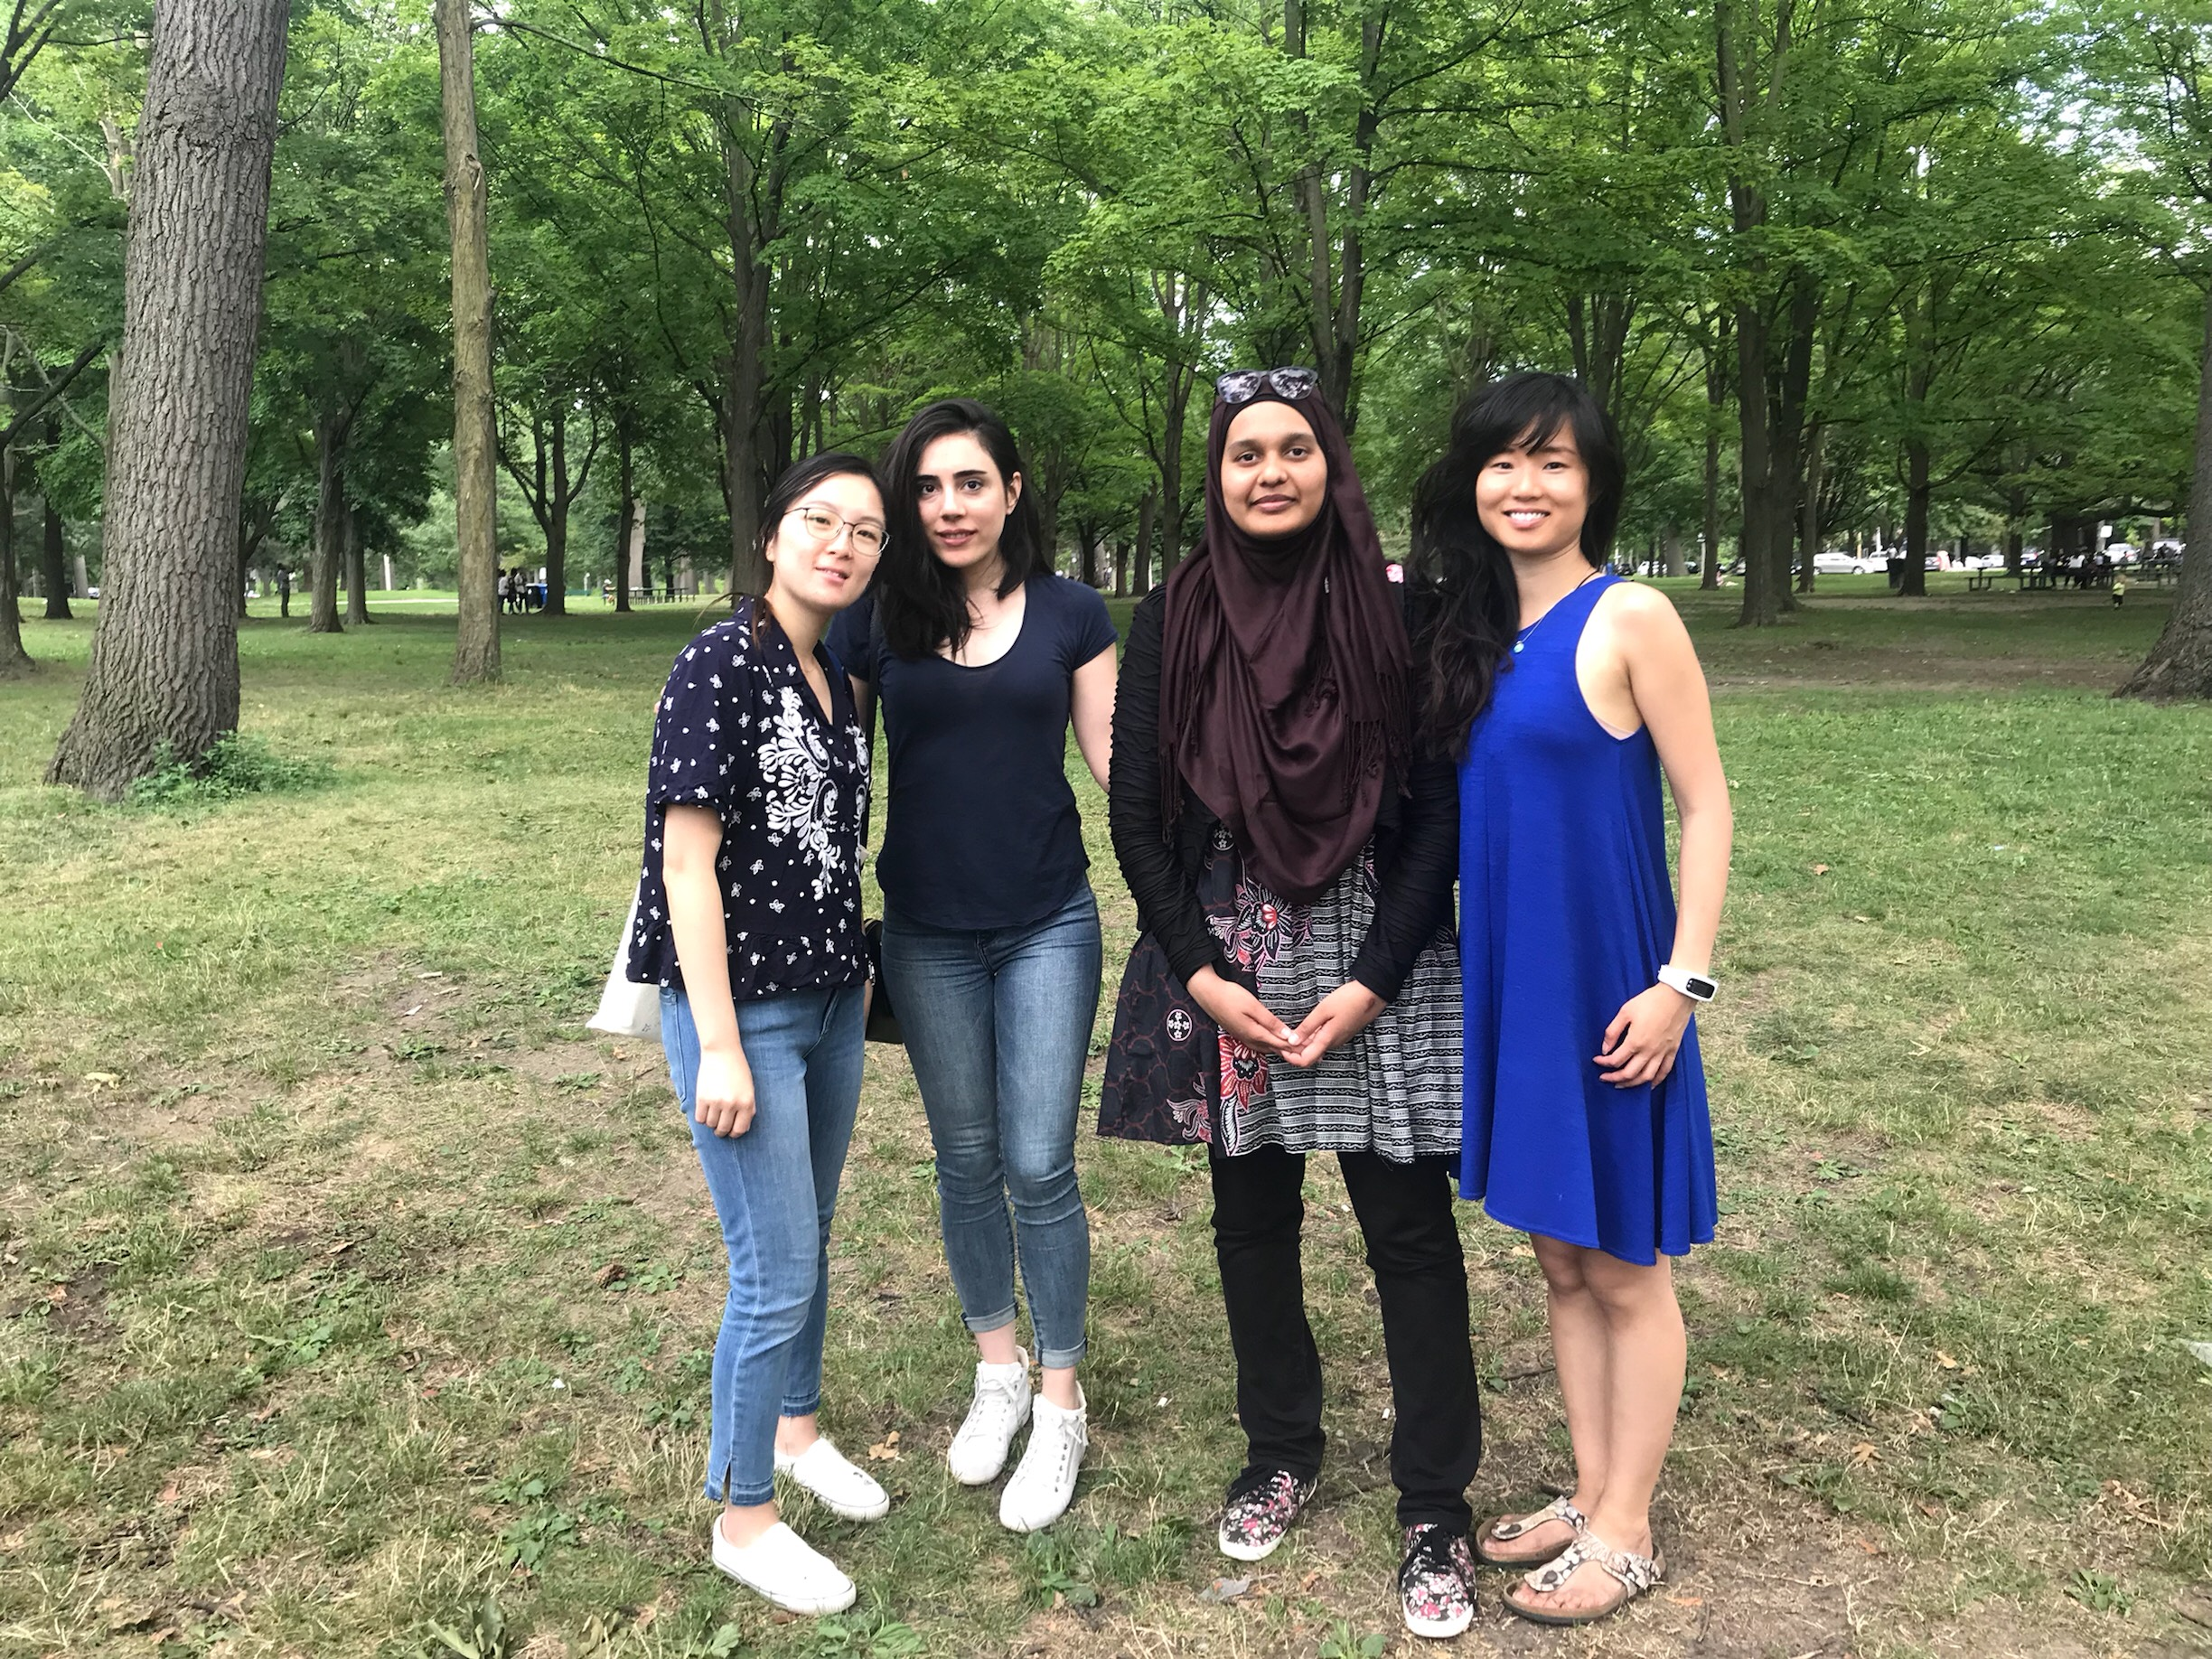 4 women (Anita, Bahareh, Farah, and Jacqueline) looking at the camera standing on grass with trees in the background